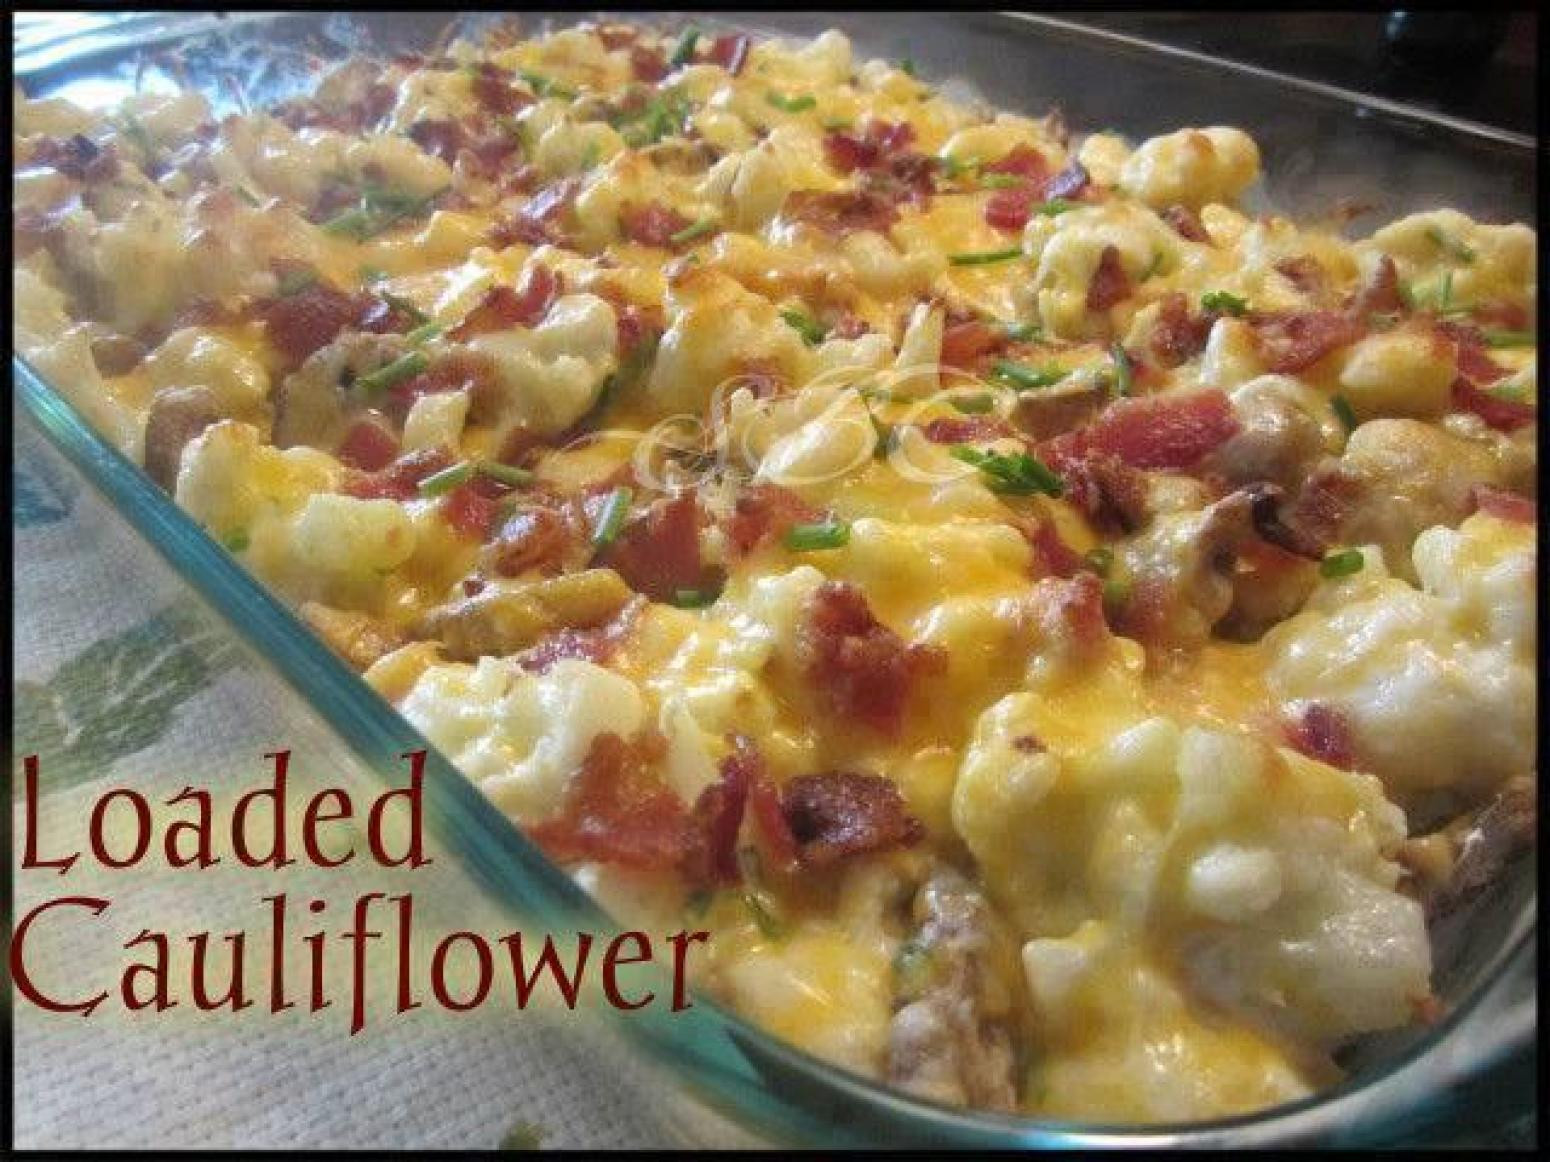 Cauliflower Low Carb Recipes  Loaded Cauliflower and it s low carb Recipe